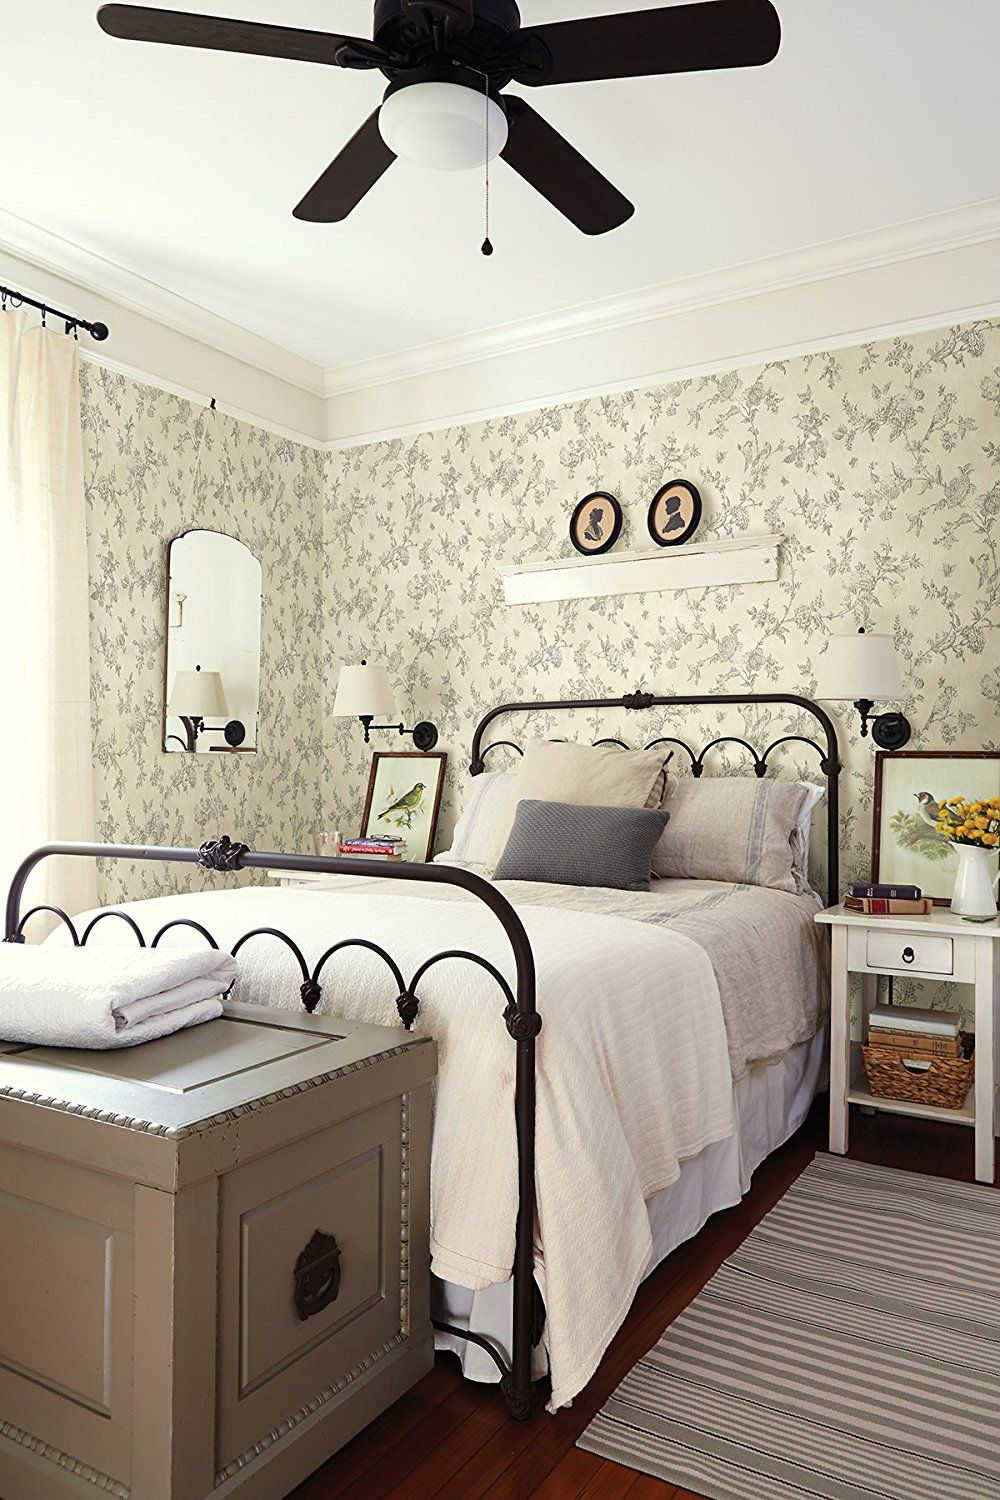 Farmhouse Cottage Style Bedroom With Wallpaper Iron Bed And